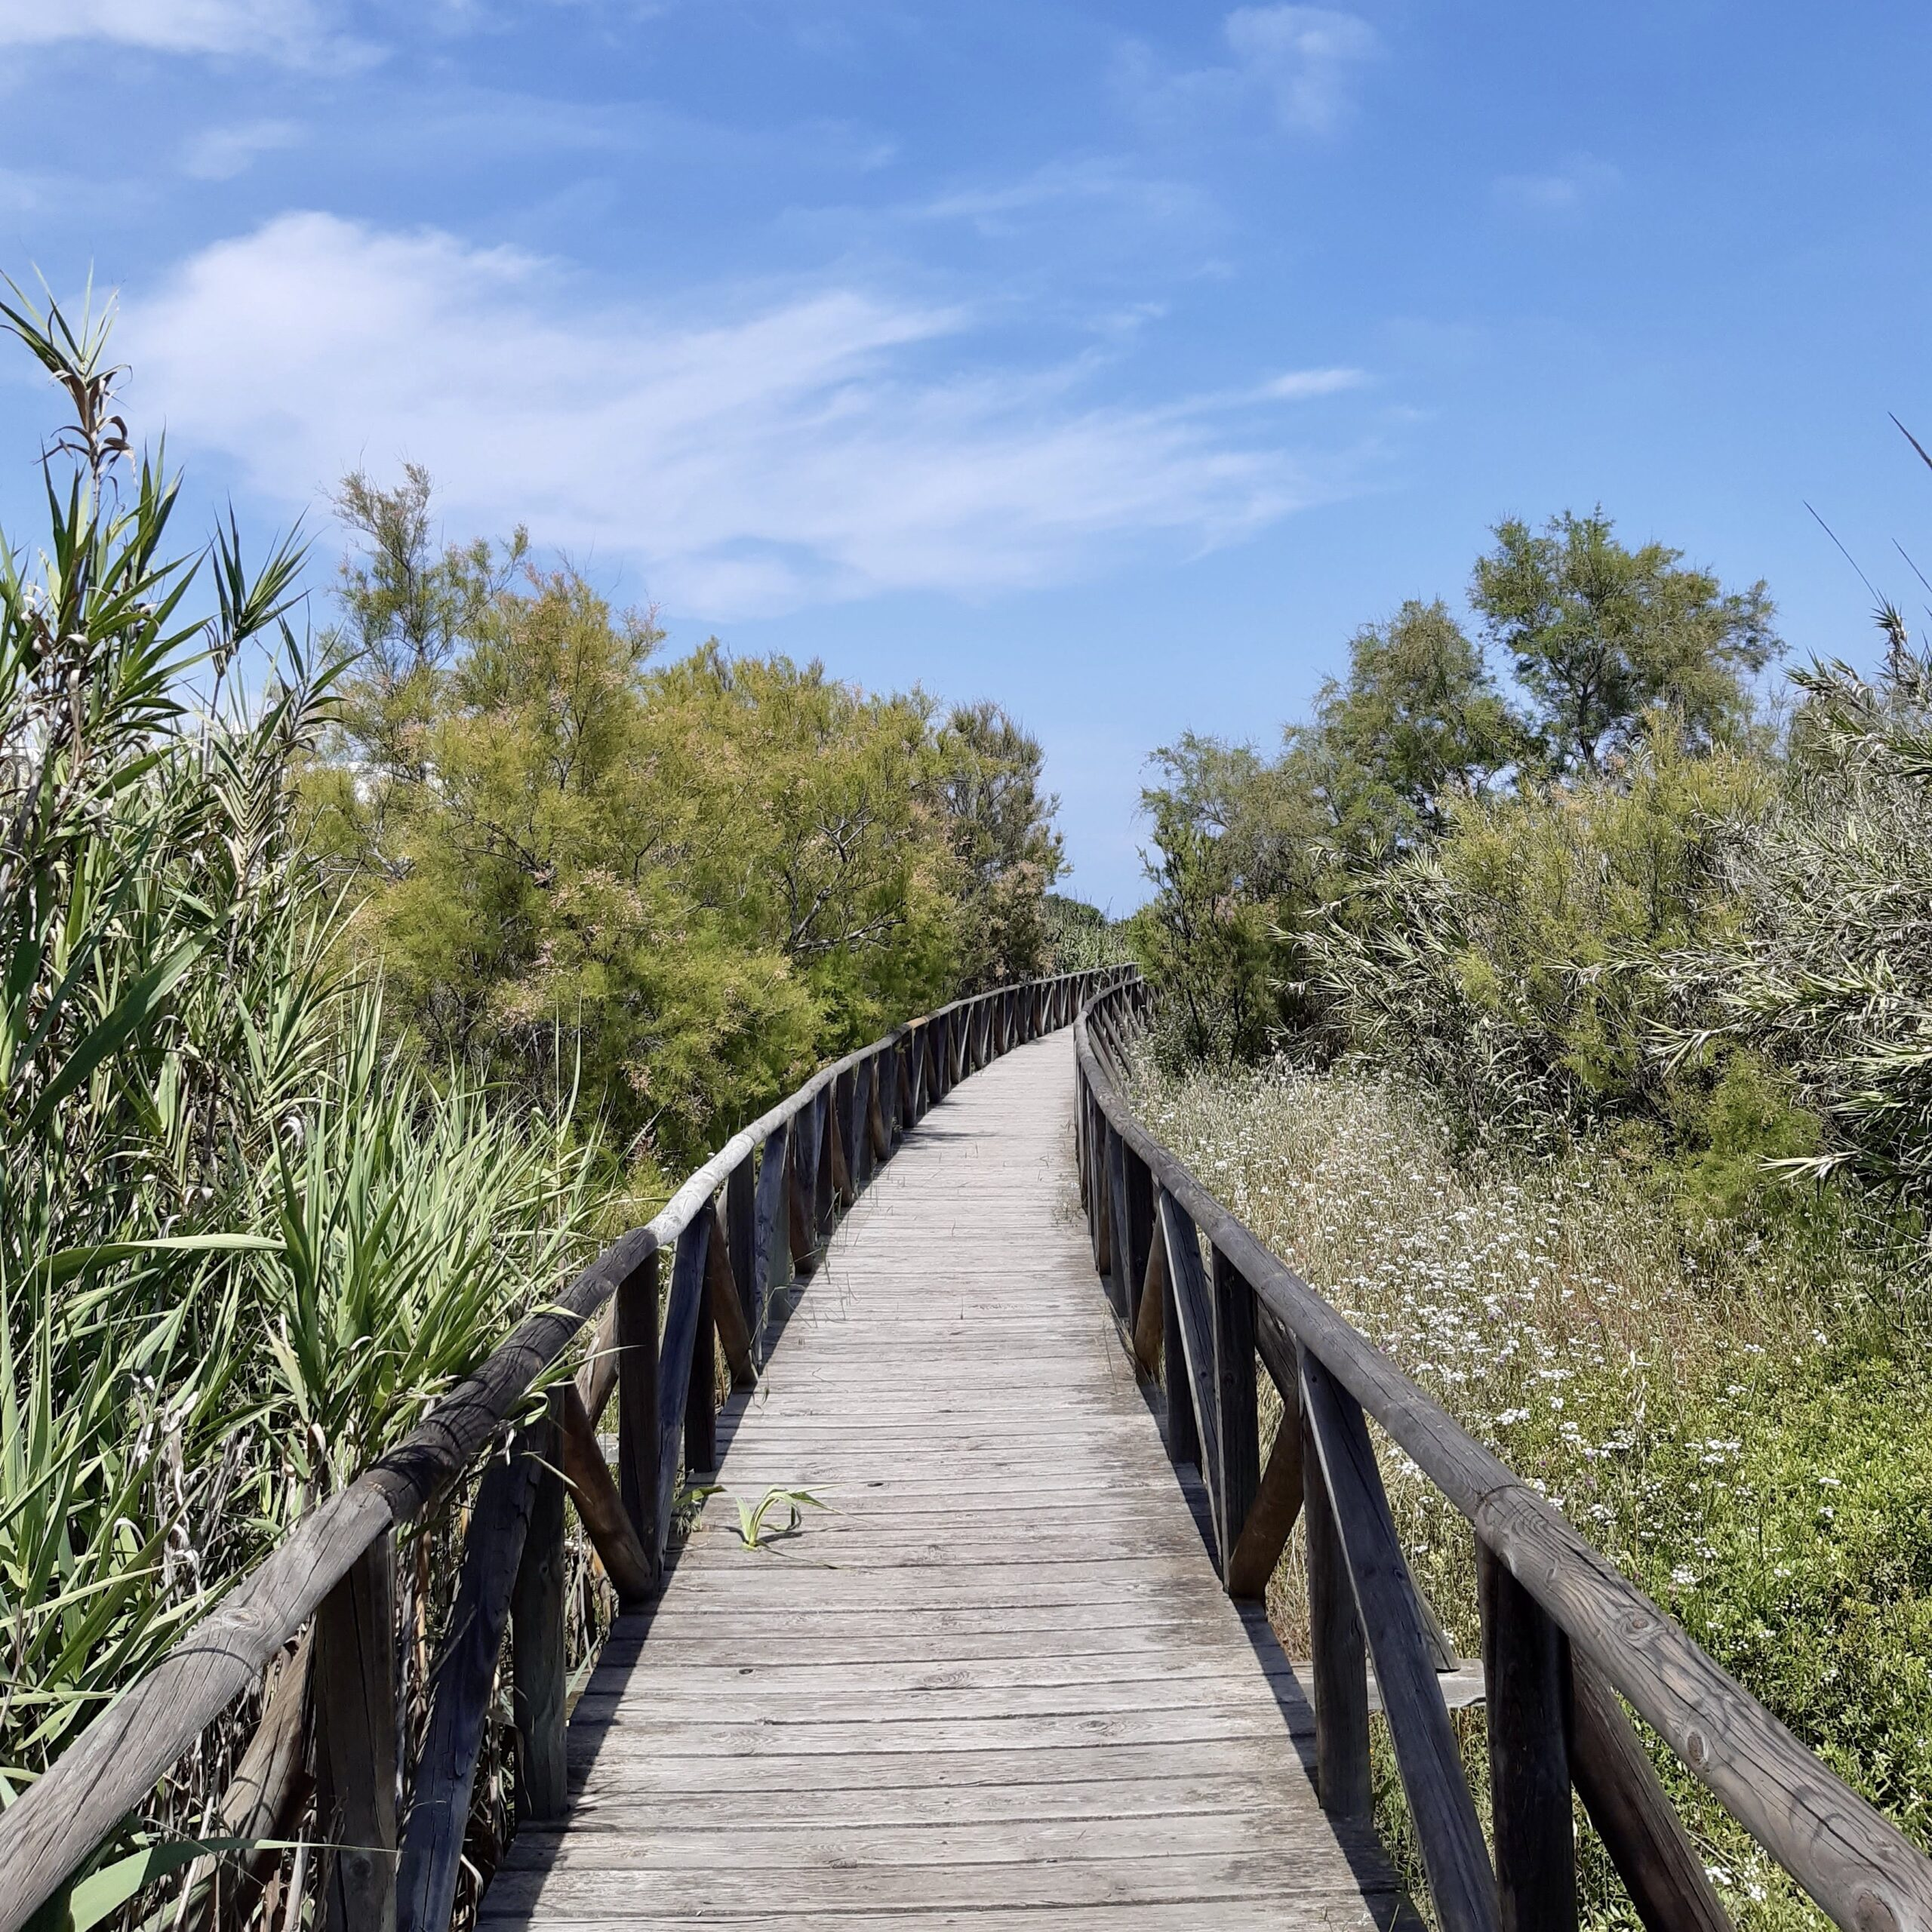 Boardwalk to Torreguadiaro